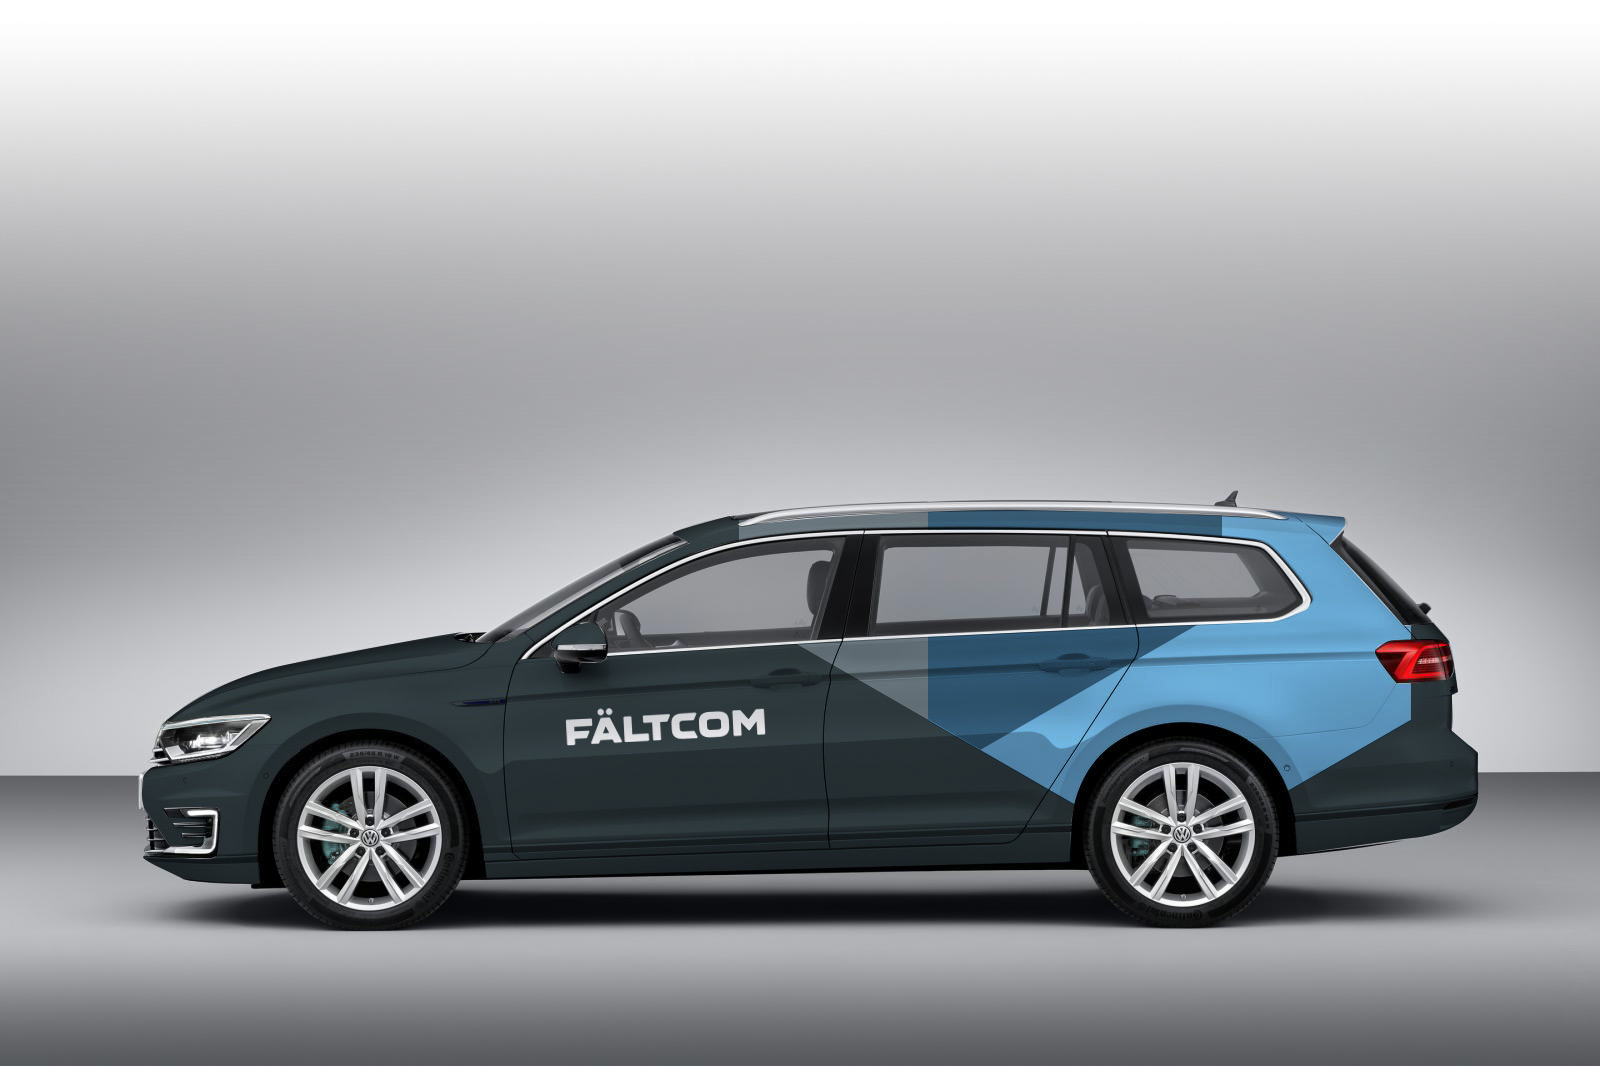 Faltcom_2015-Volkswagen-Passat-Wagon-Side-View-Wallpaper_grey_2